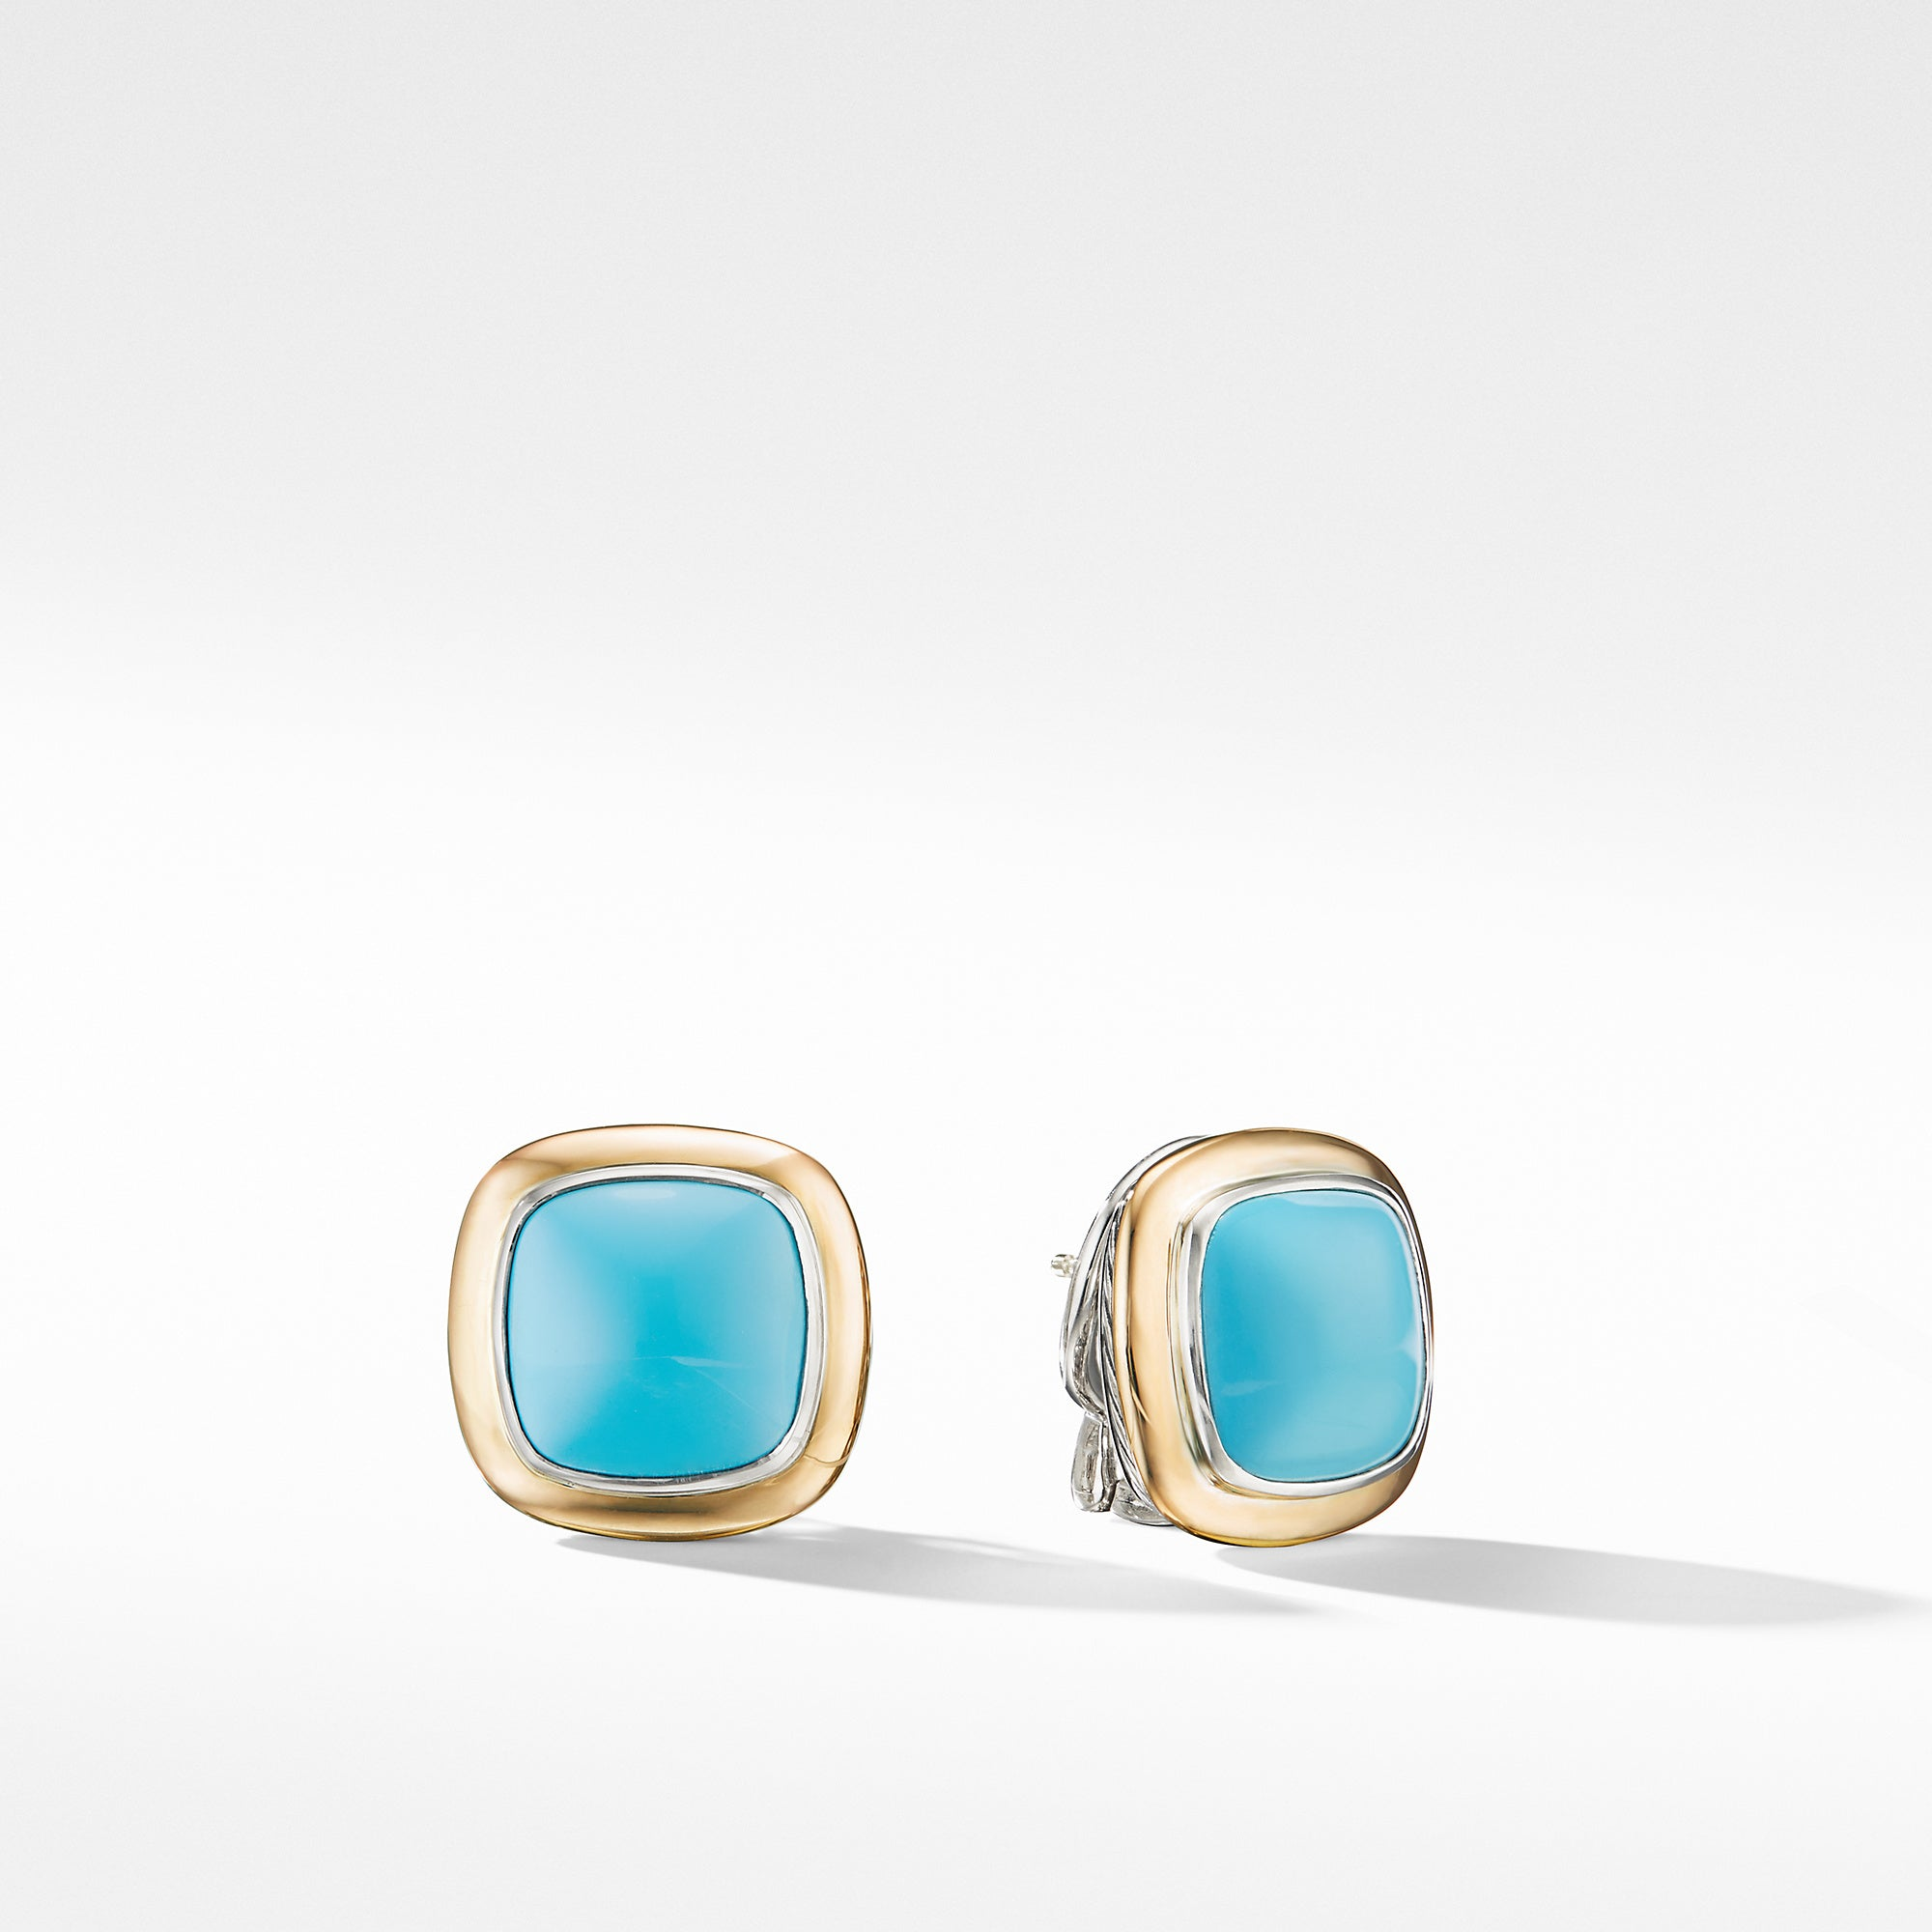 Albion® Stud Earrings with 18K Gold and Reconstituted Turquoise